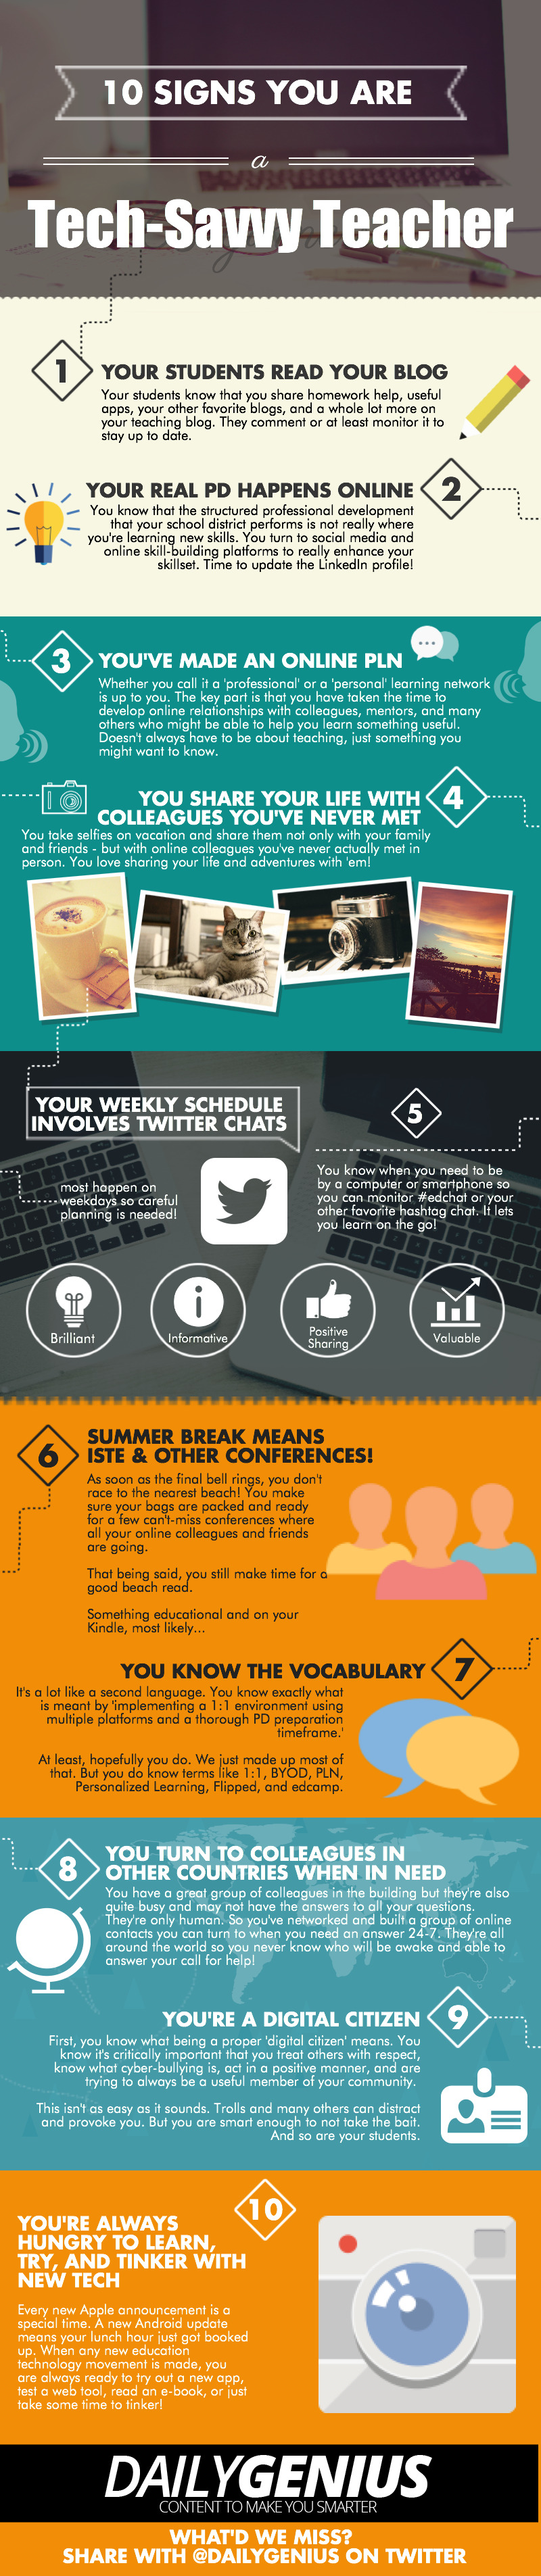 10 Signs You Are a Tech Savvy Teacher Infographic